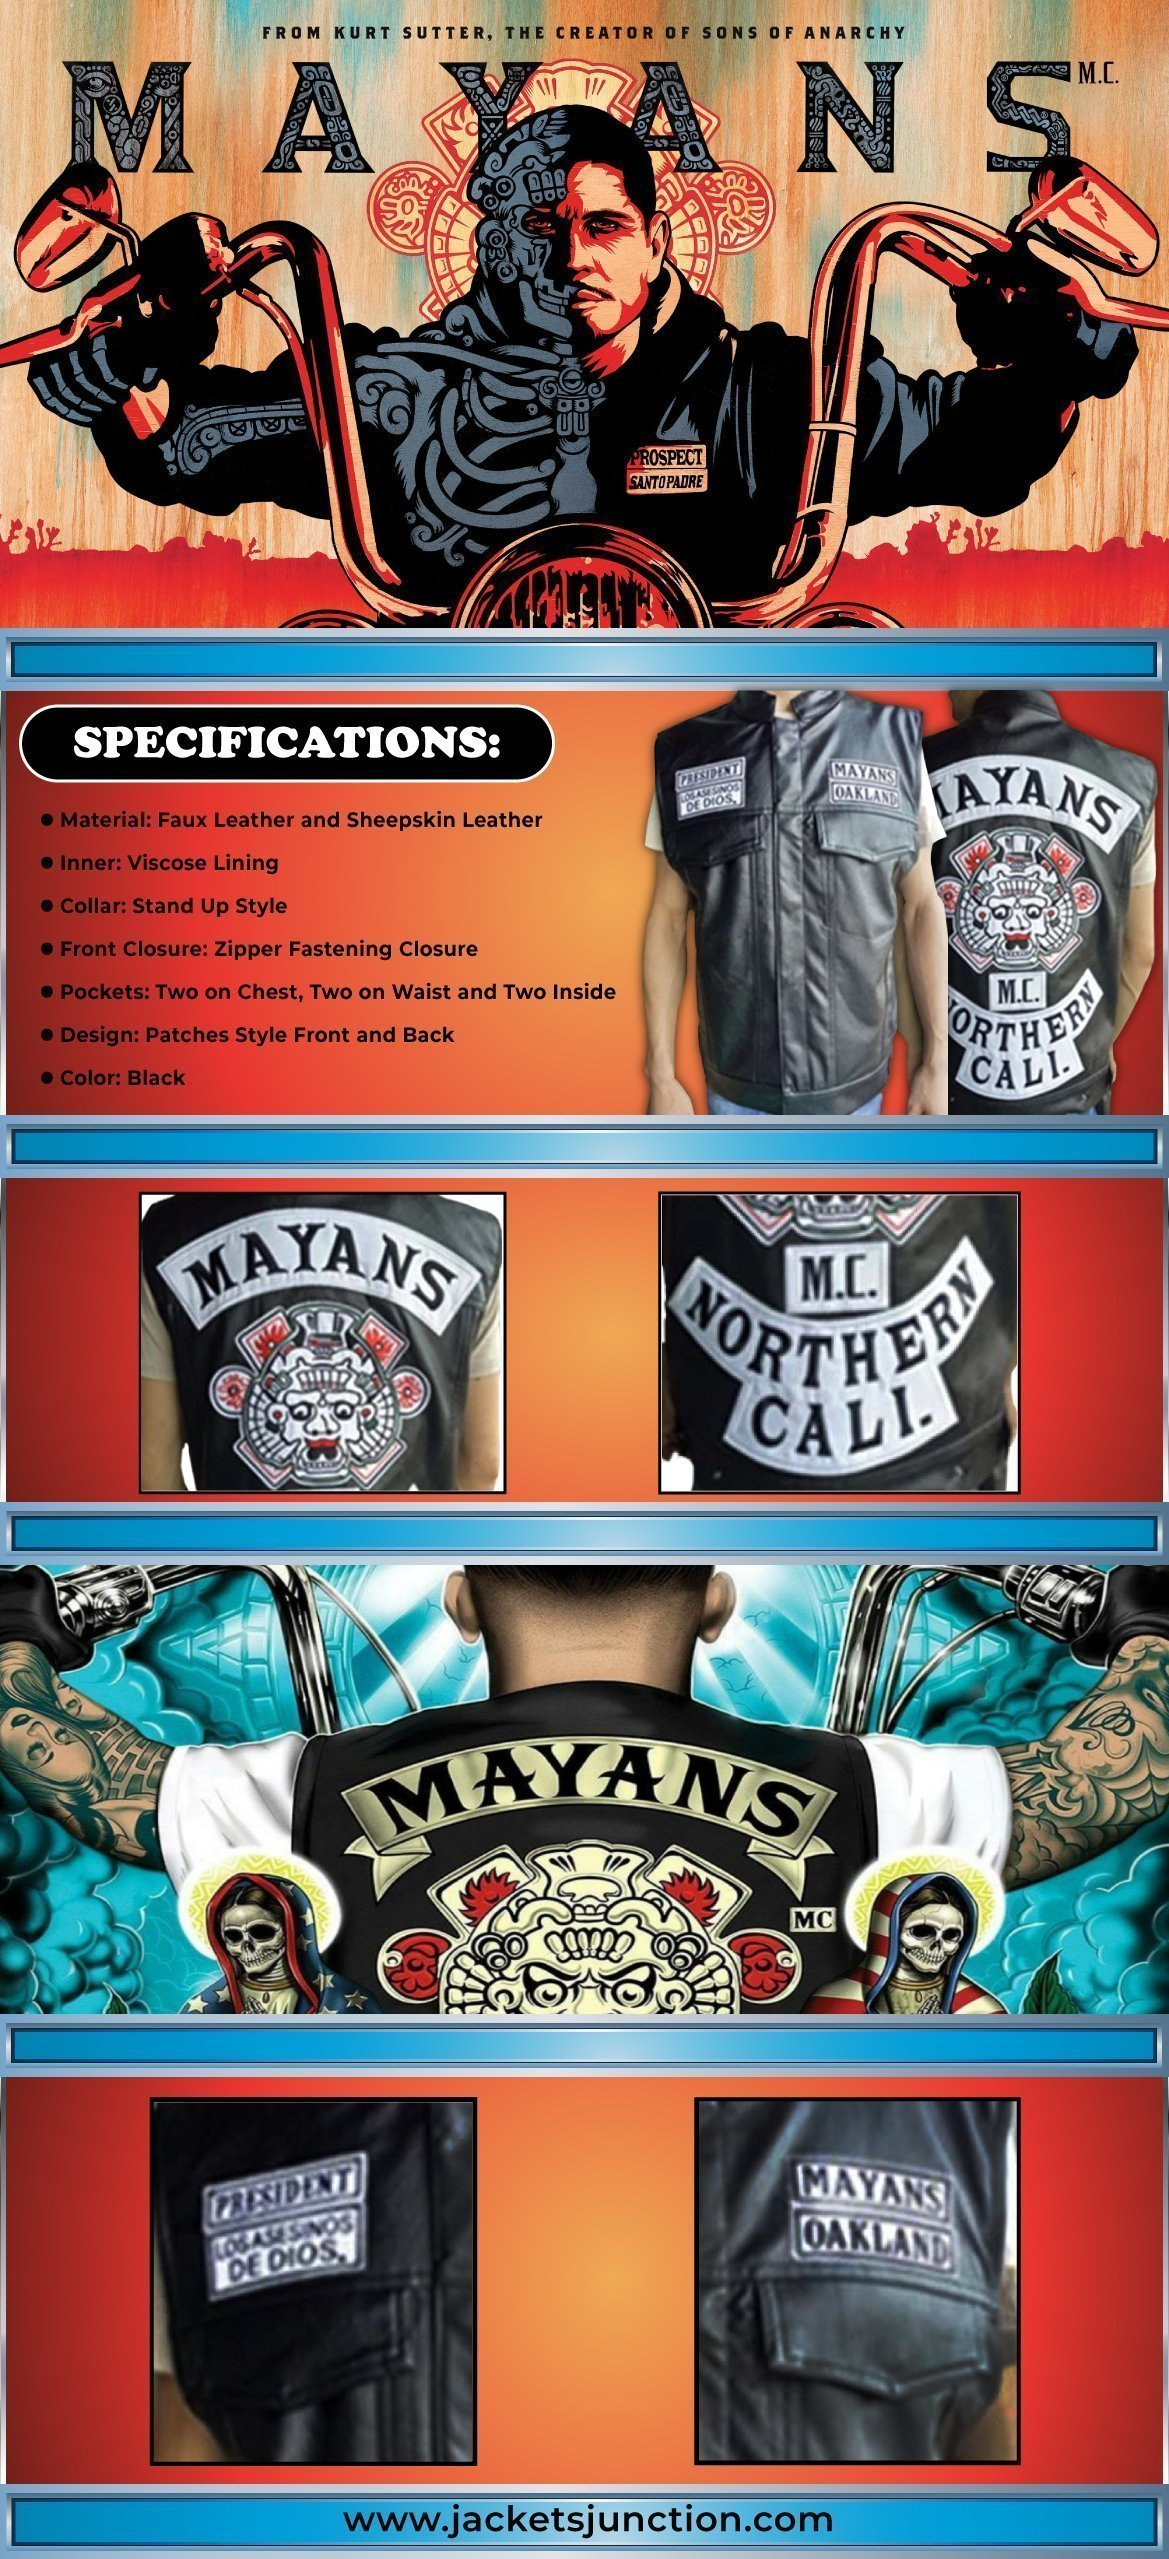 Angel Reyes Mayans M.C. Clayton Cardenas Leather Vest Infographic